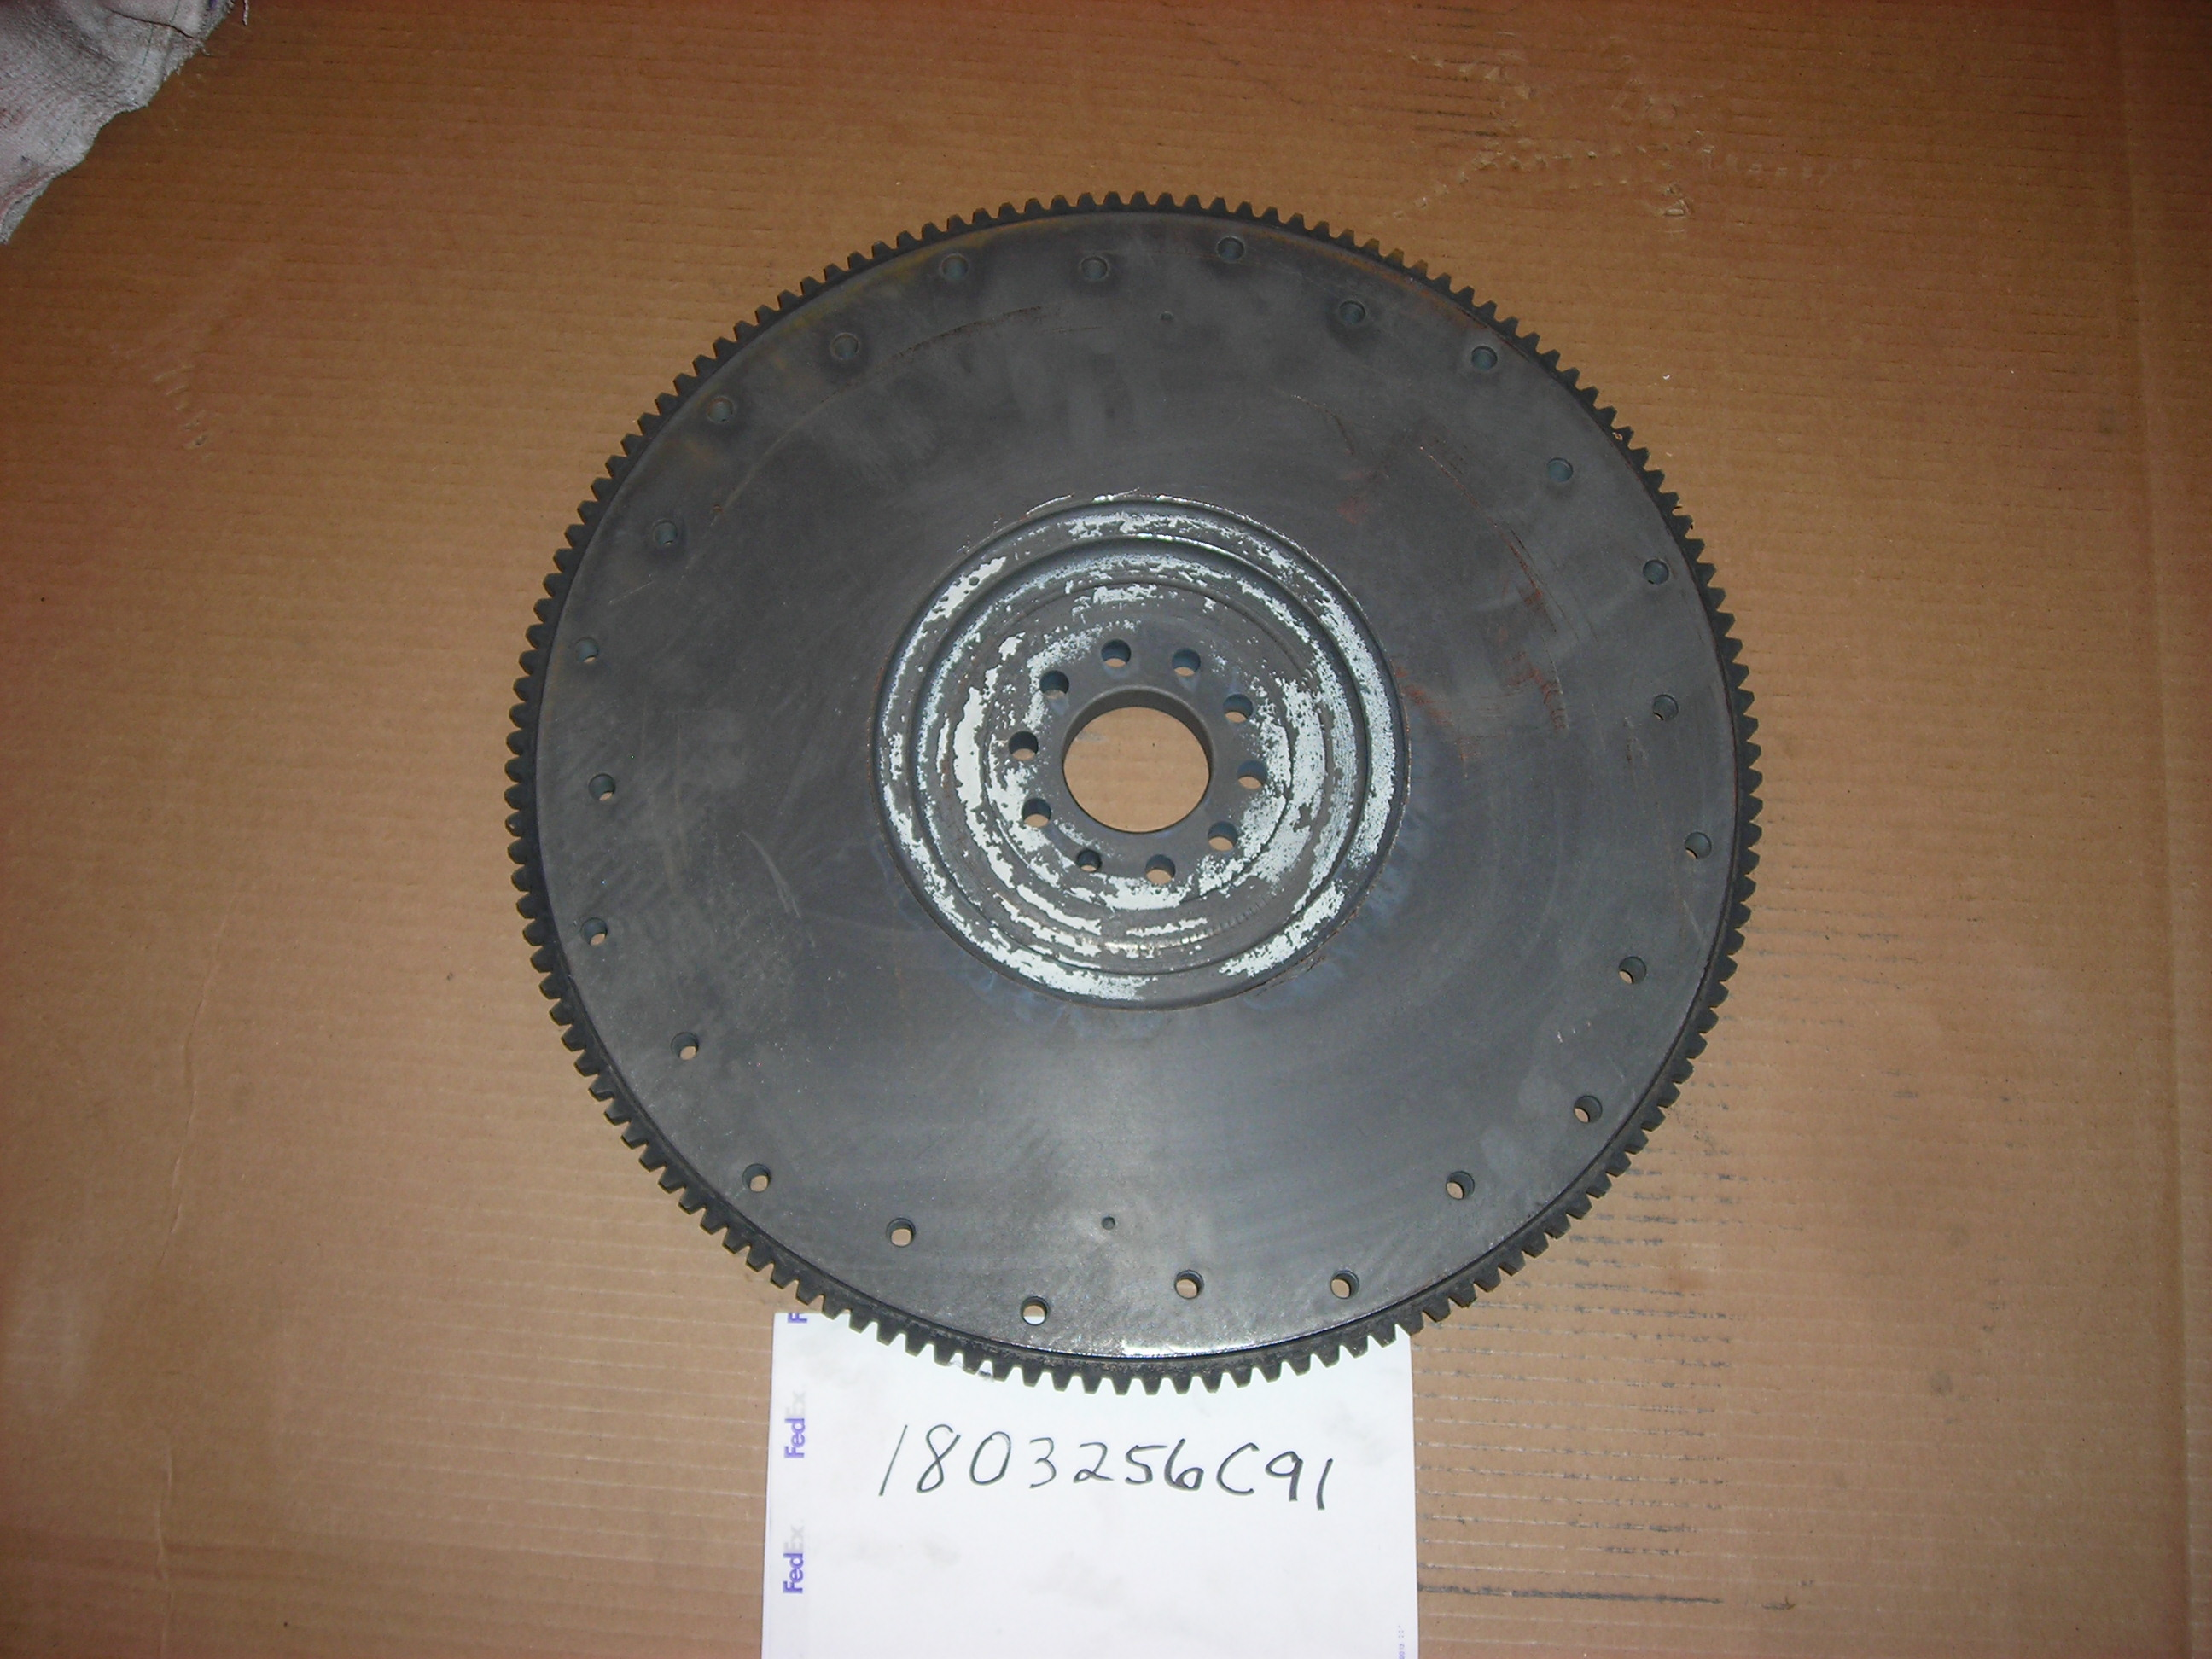 1803256C91 Navistar International Flywheel Front